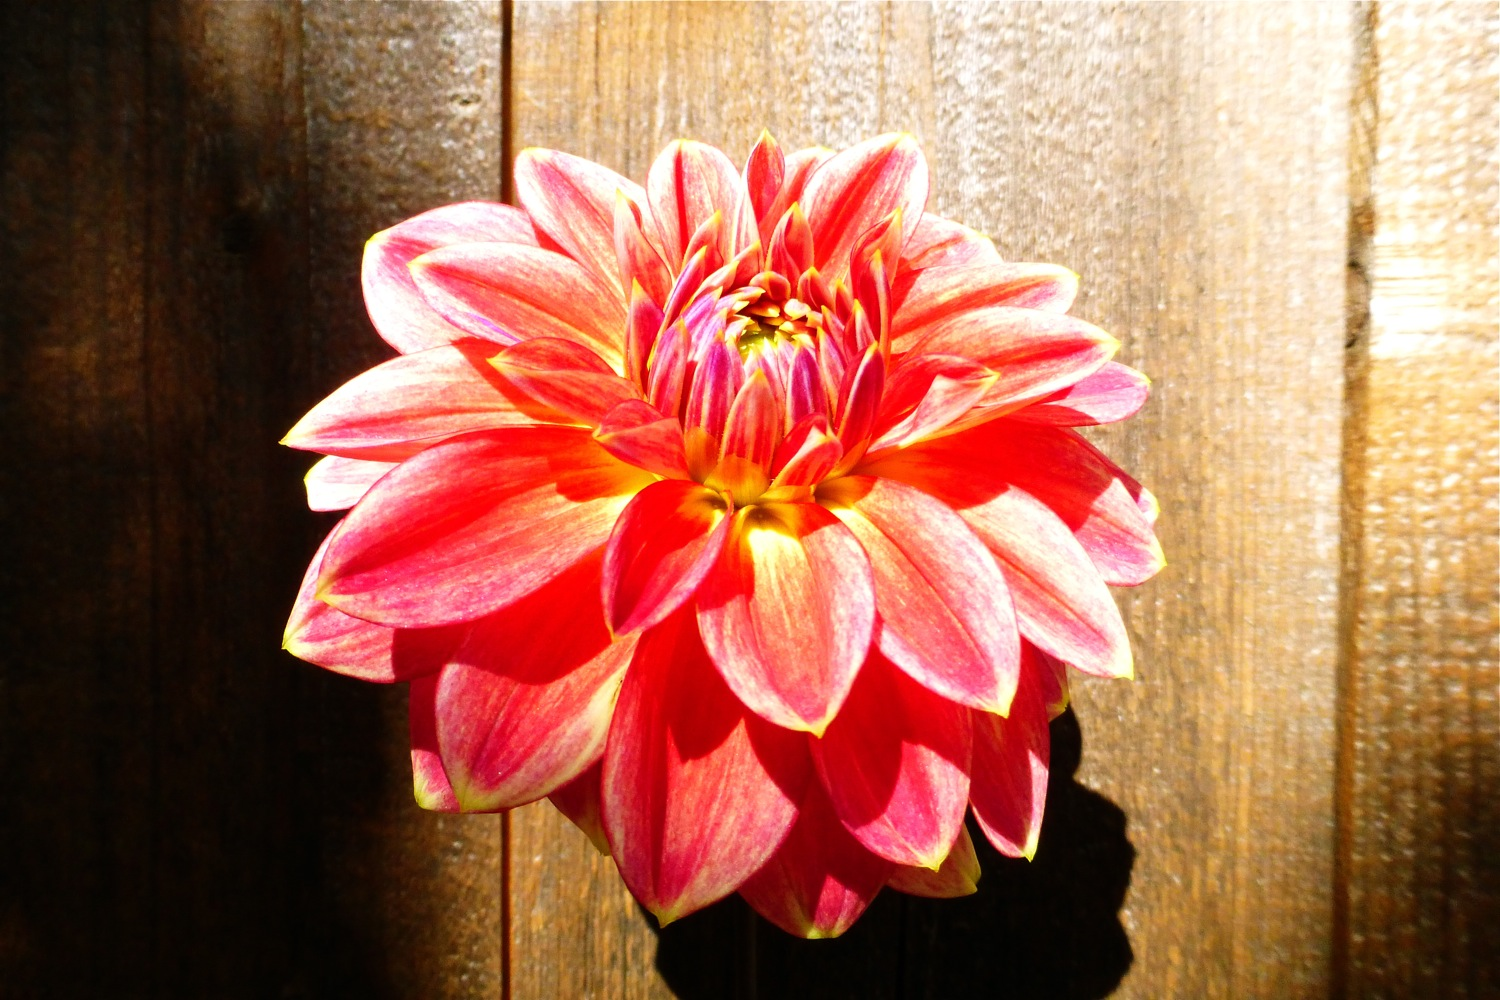 autumn garden, dahlia, autumn dahlia, red yellow dahlia, autumn sunshine